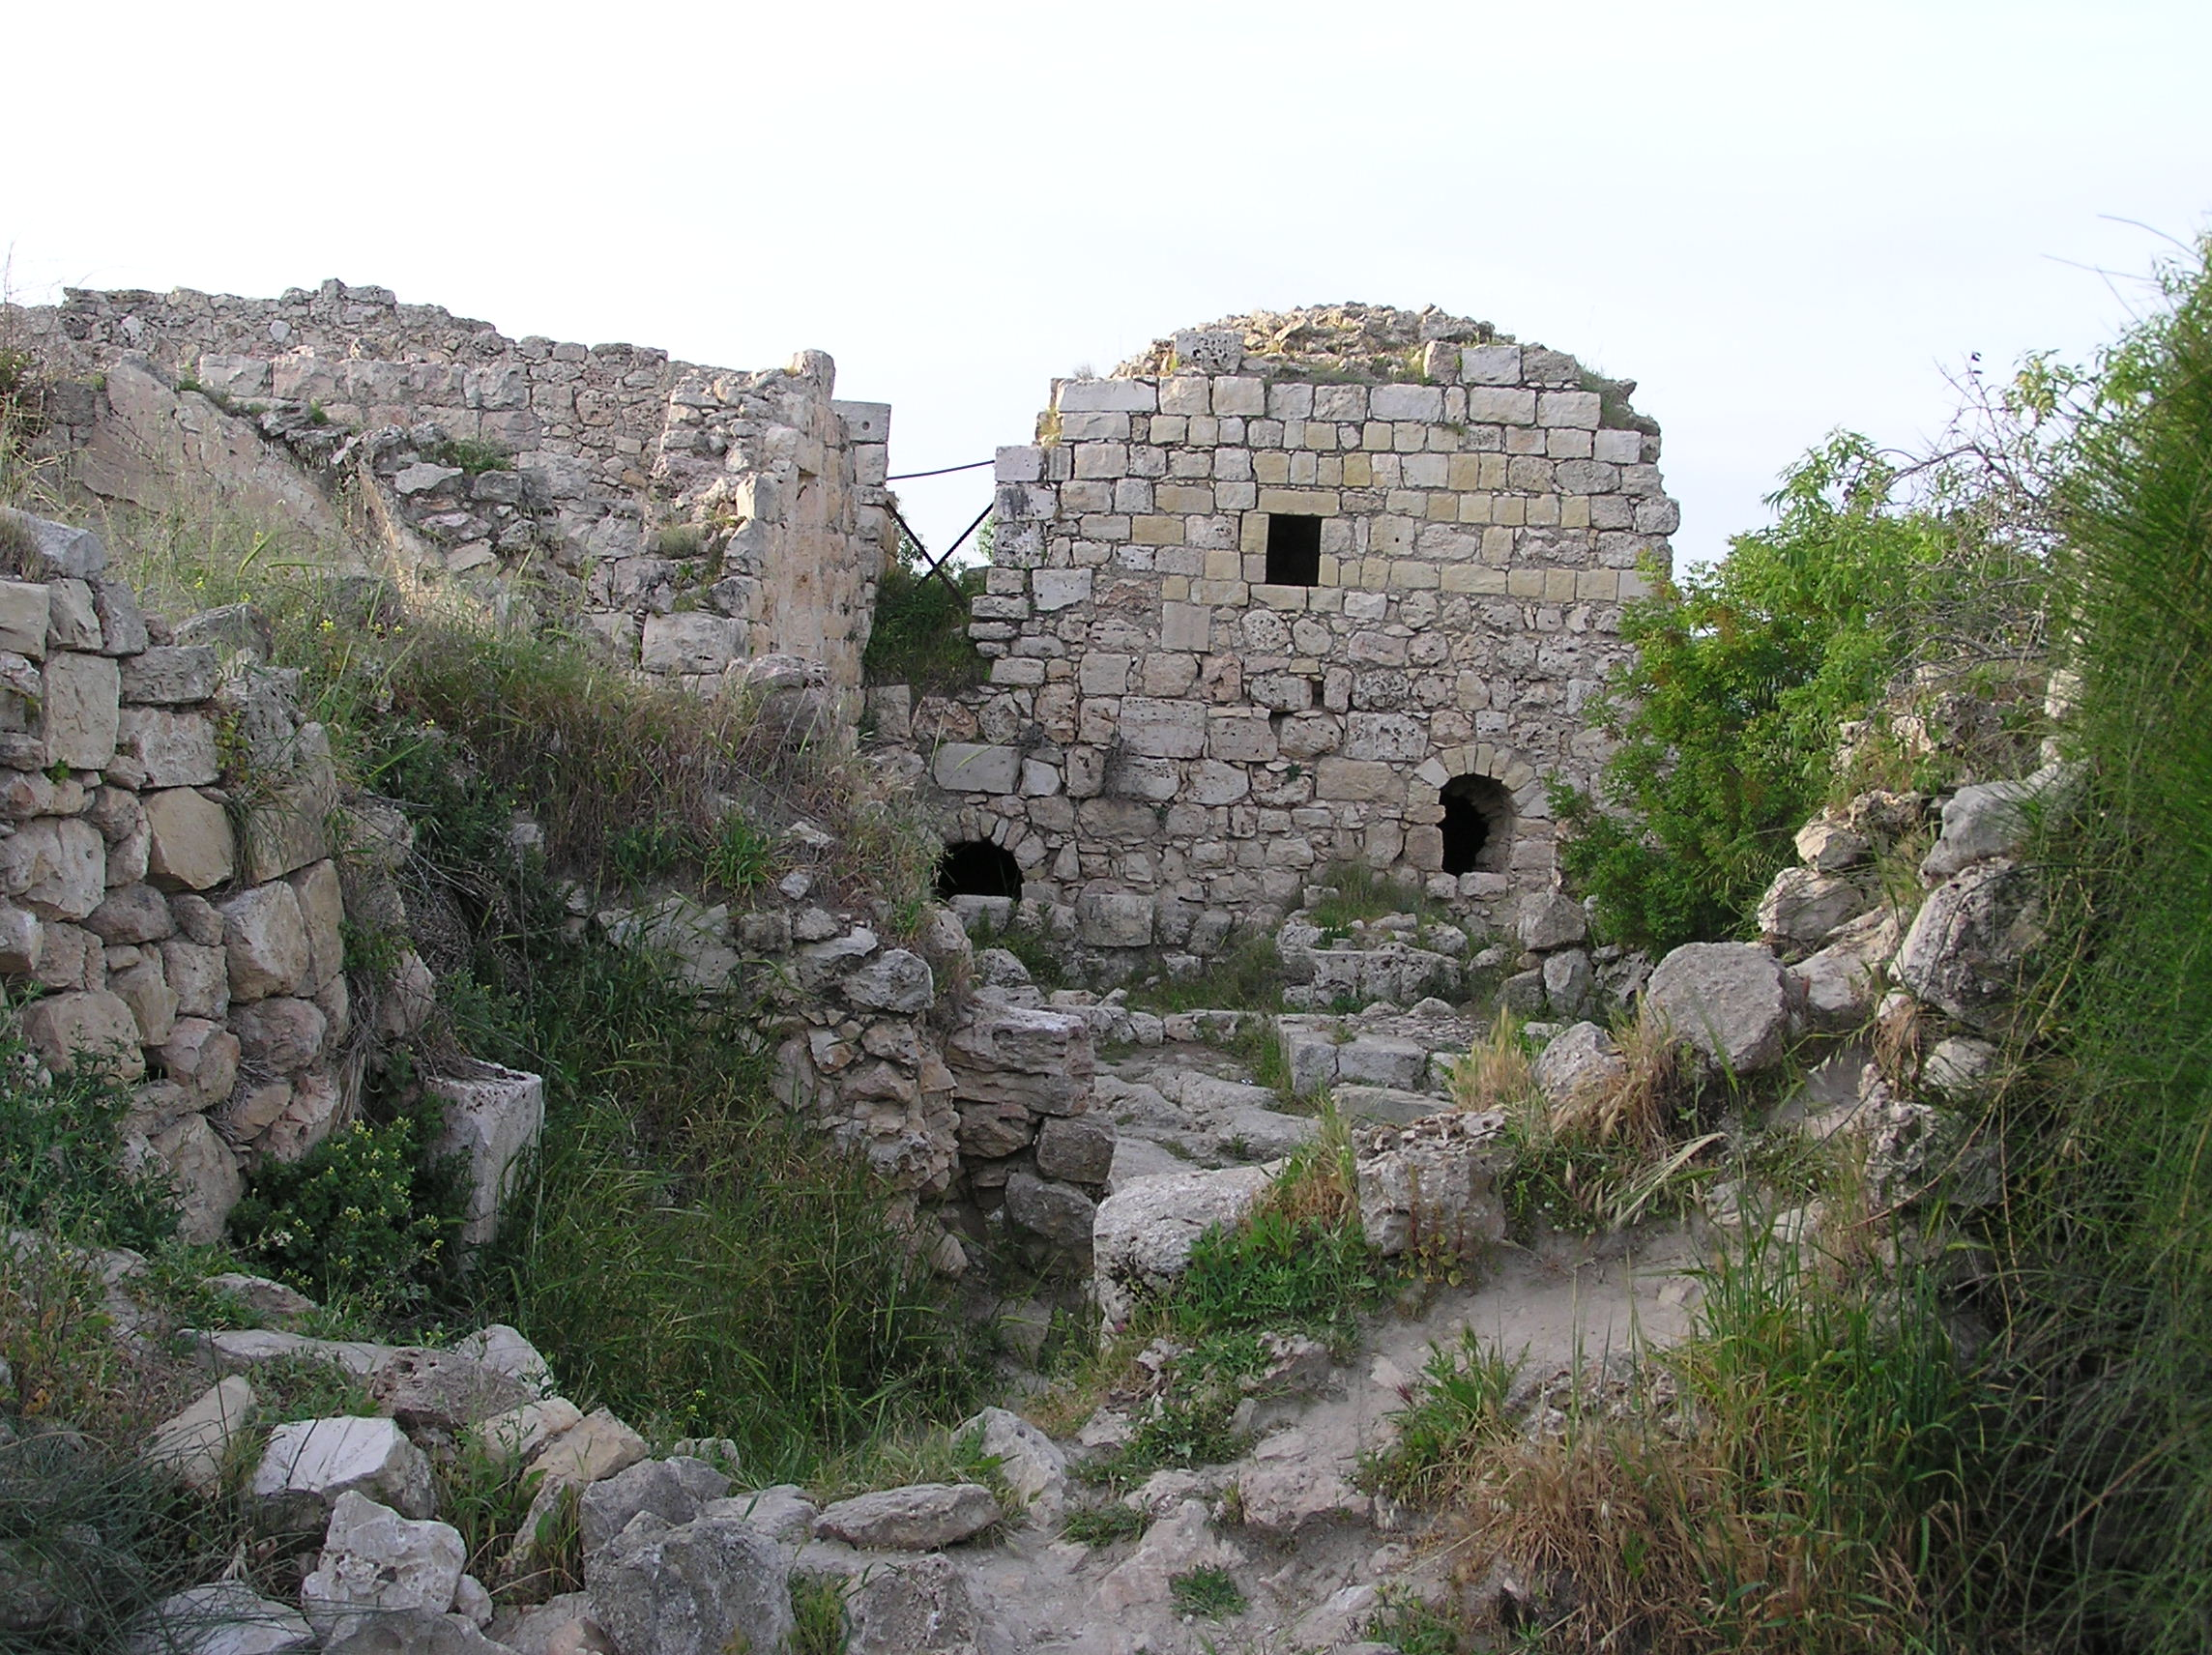 Suba - صوبا : Suba's Houses In Ruins Remain Standing Over Decades Of Neglect (Village Center Area).